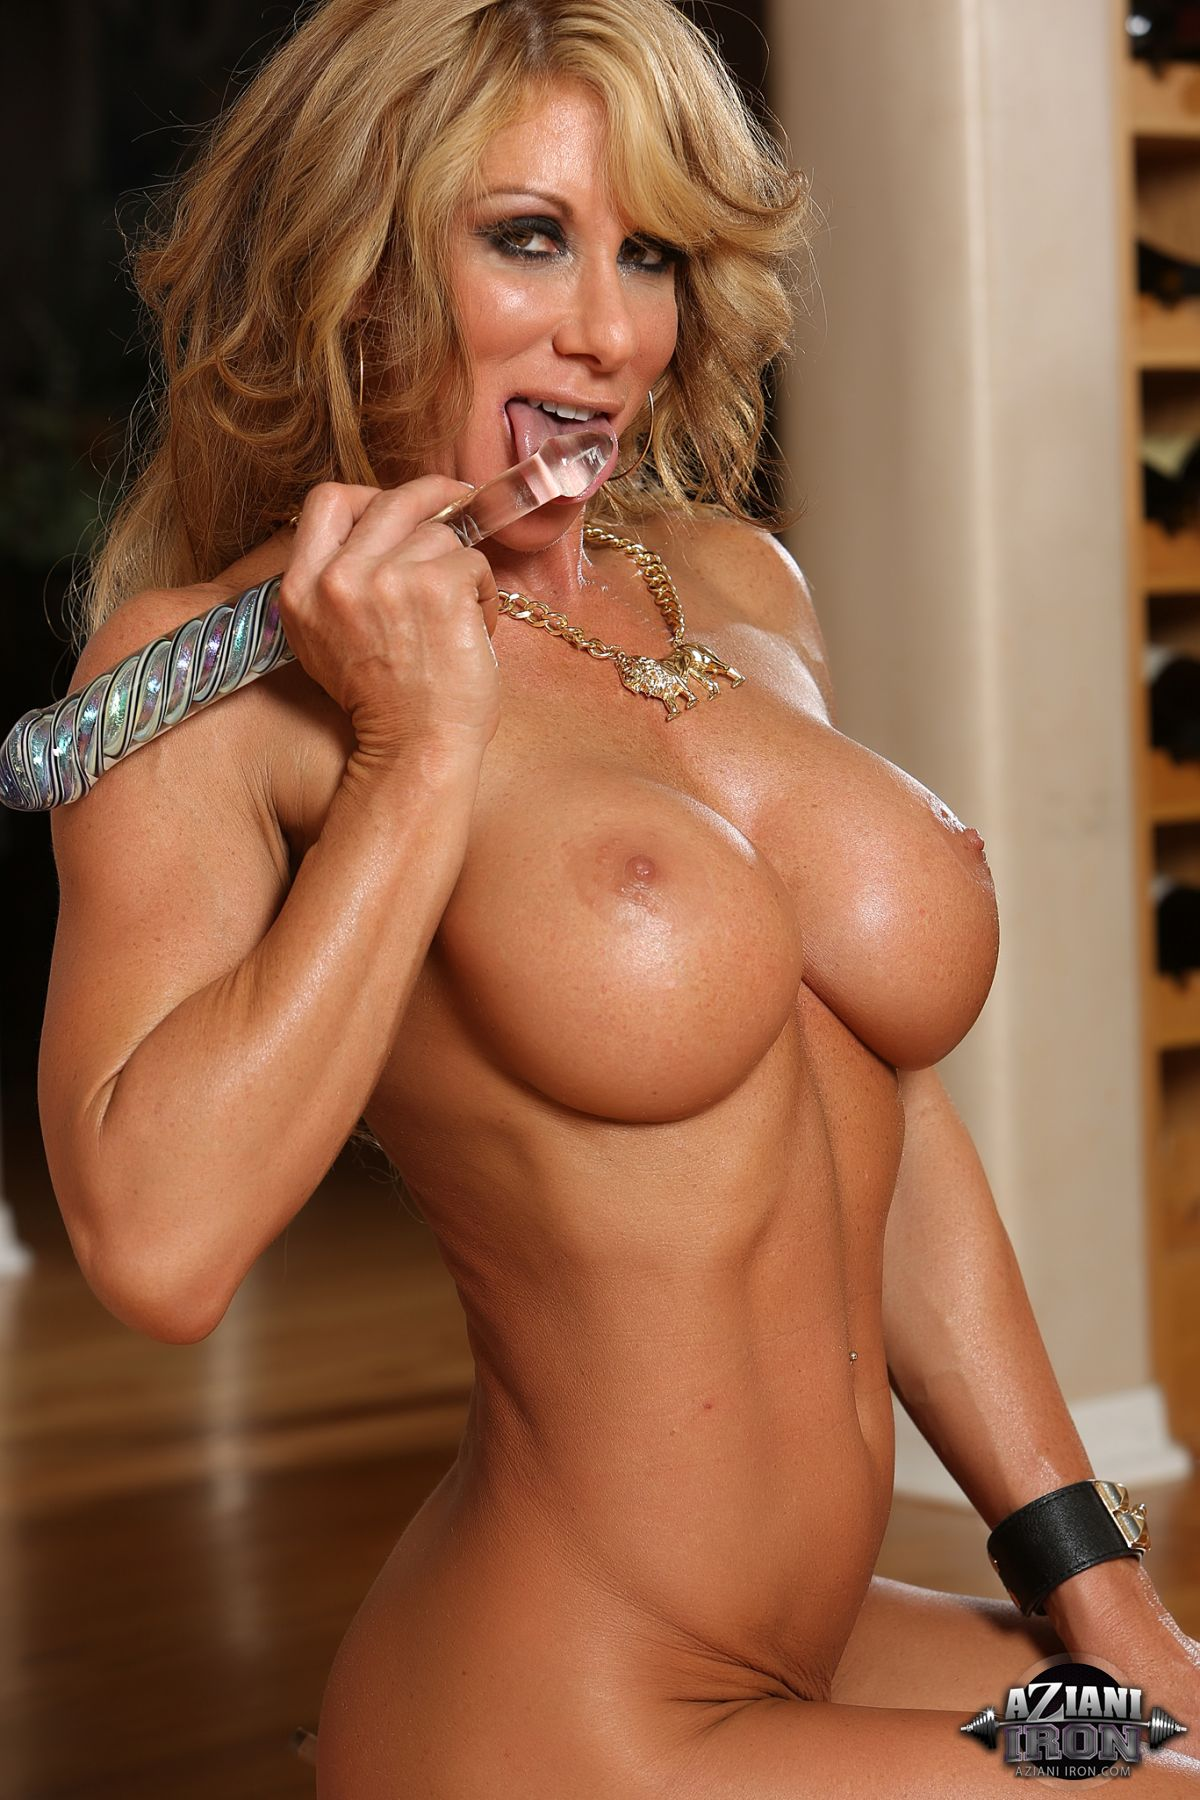 Abby marie pulls some stunning hot muscle poses 1